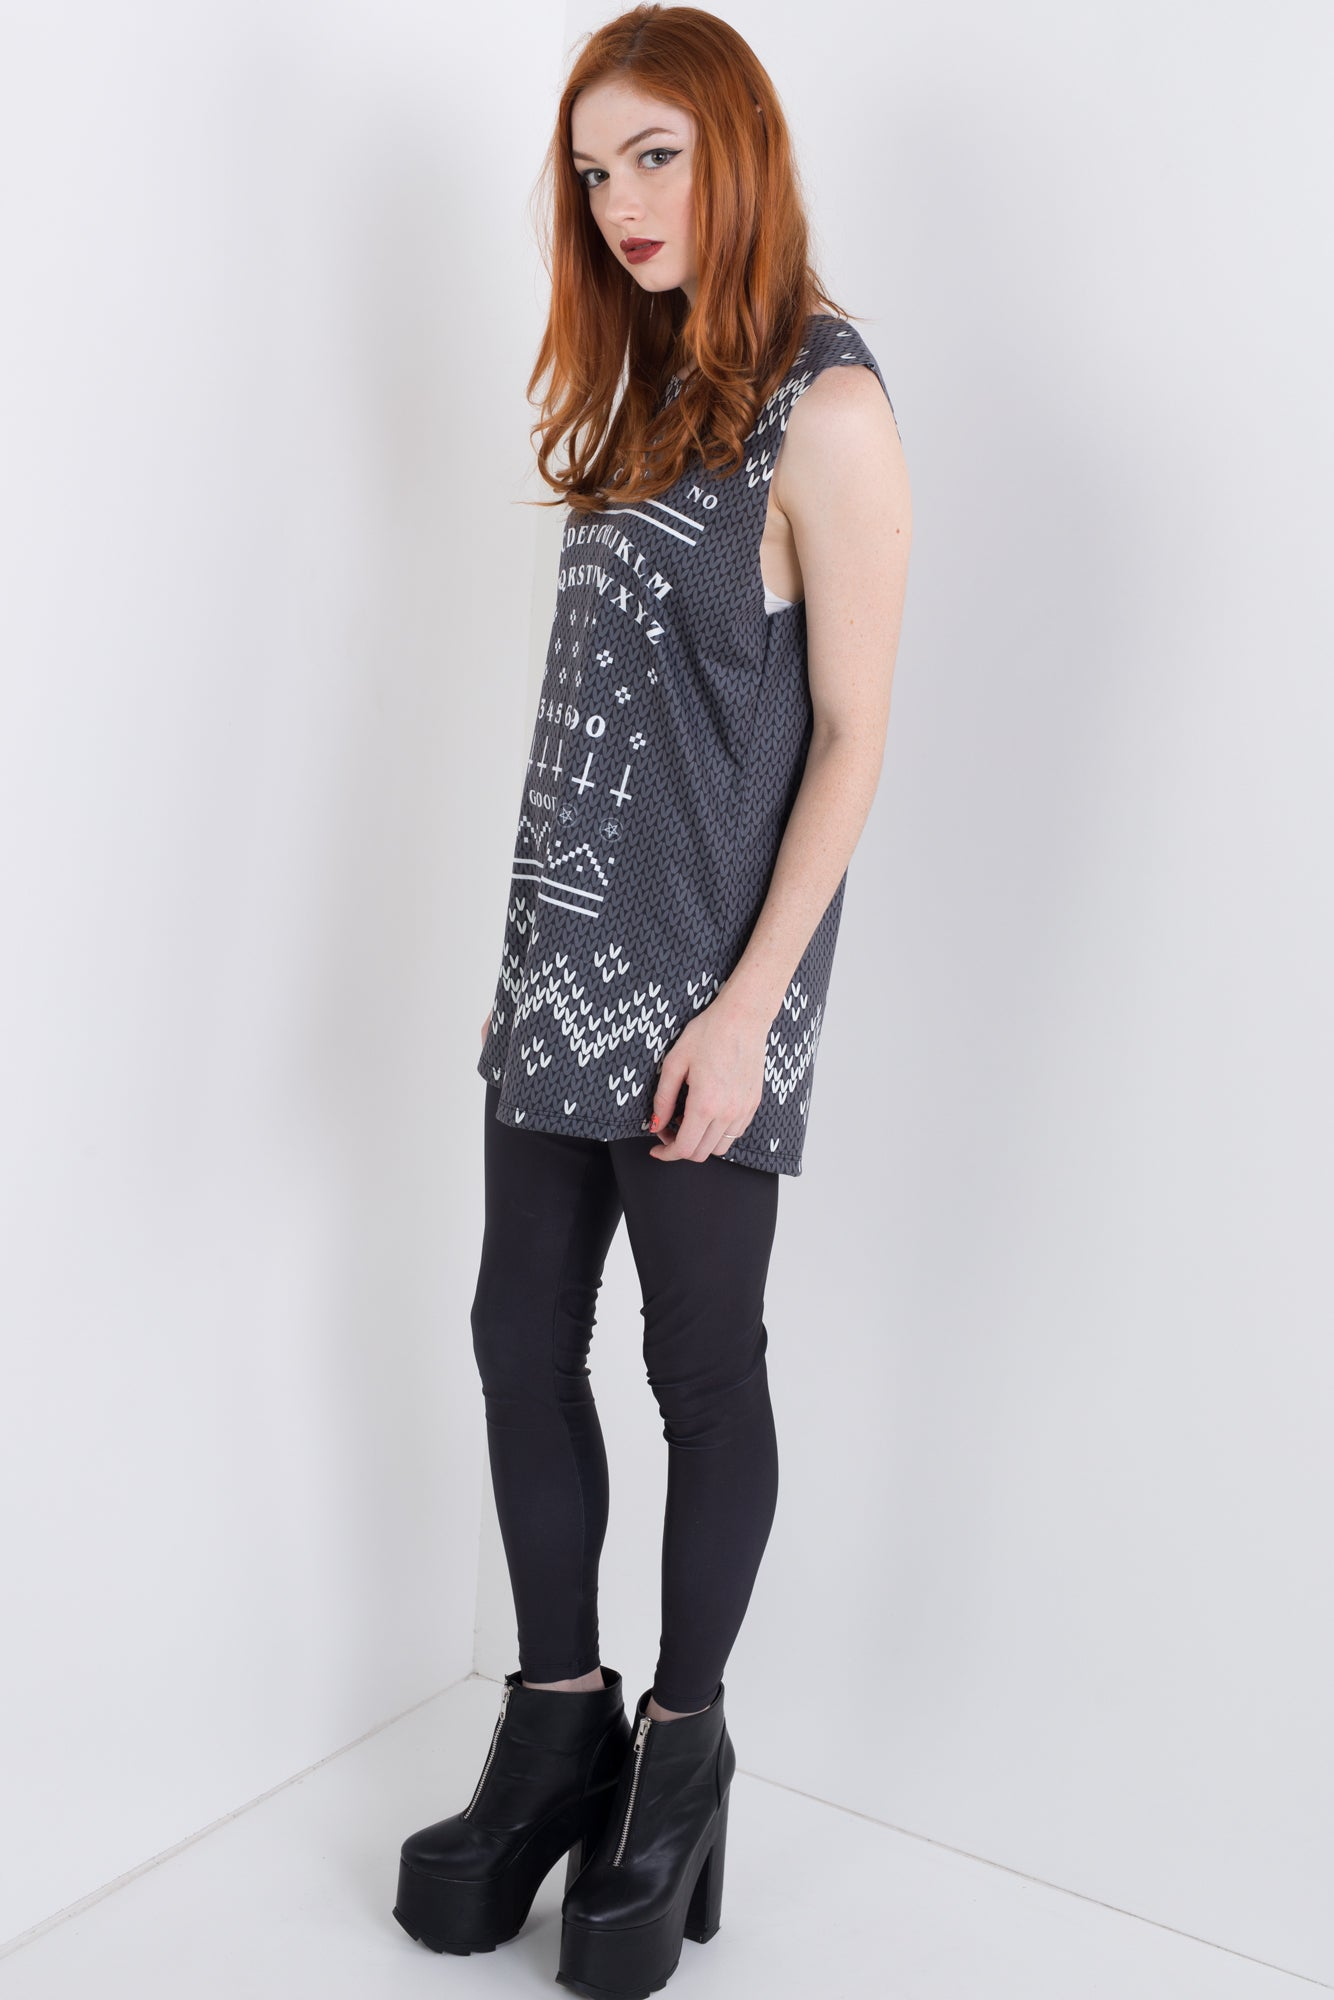 Ouija Knitted Christmas Sleeveless Tee